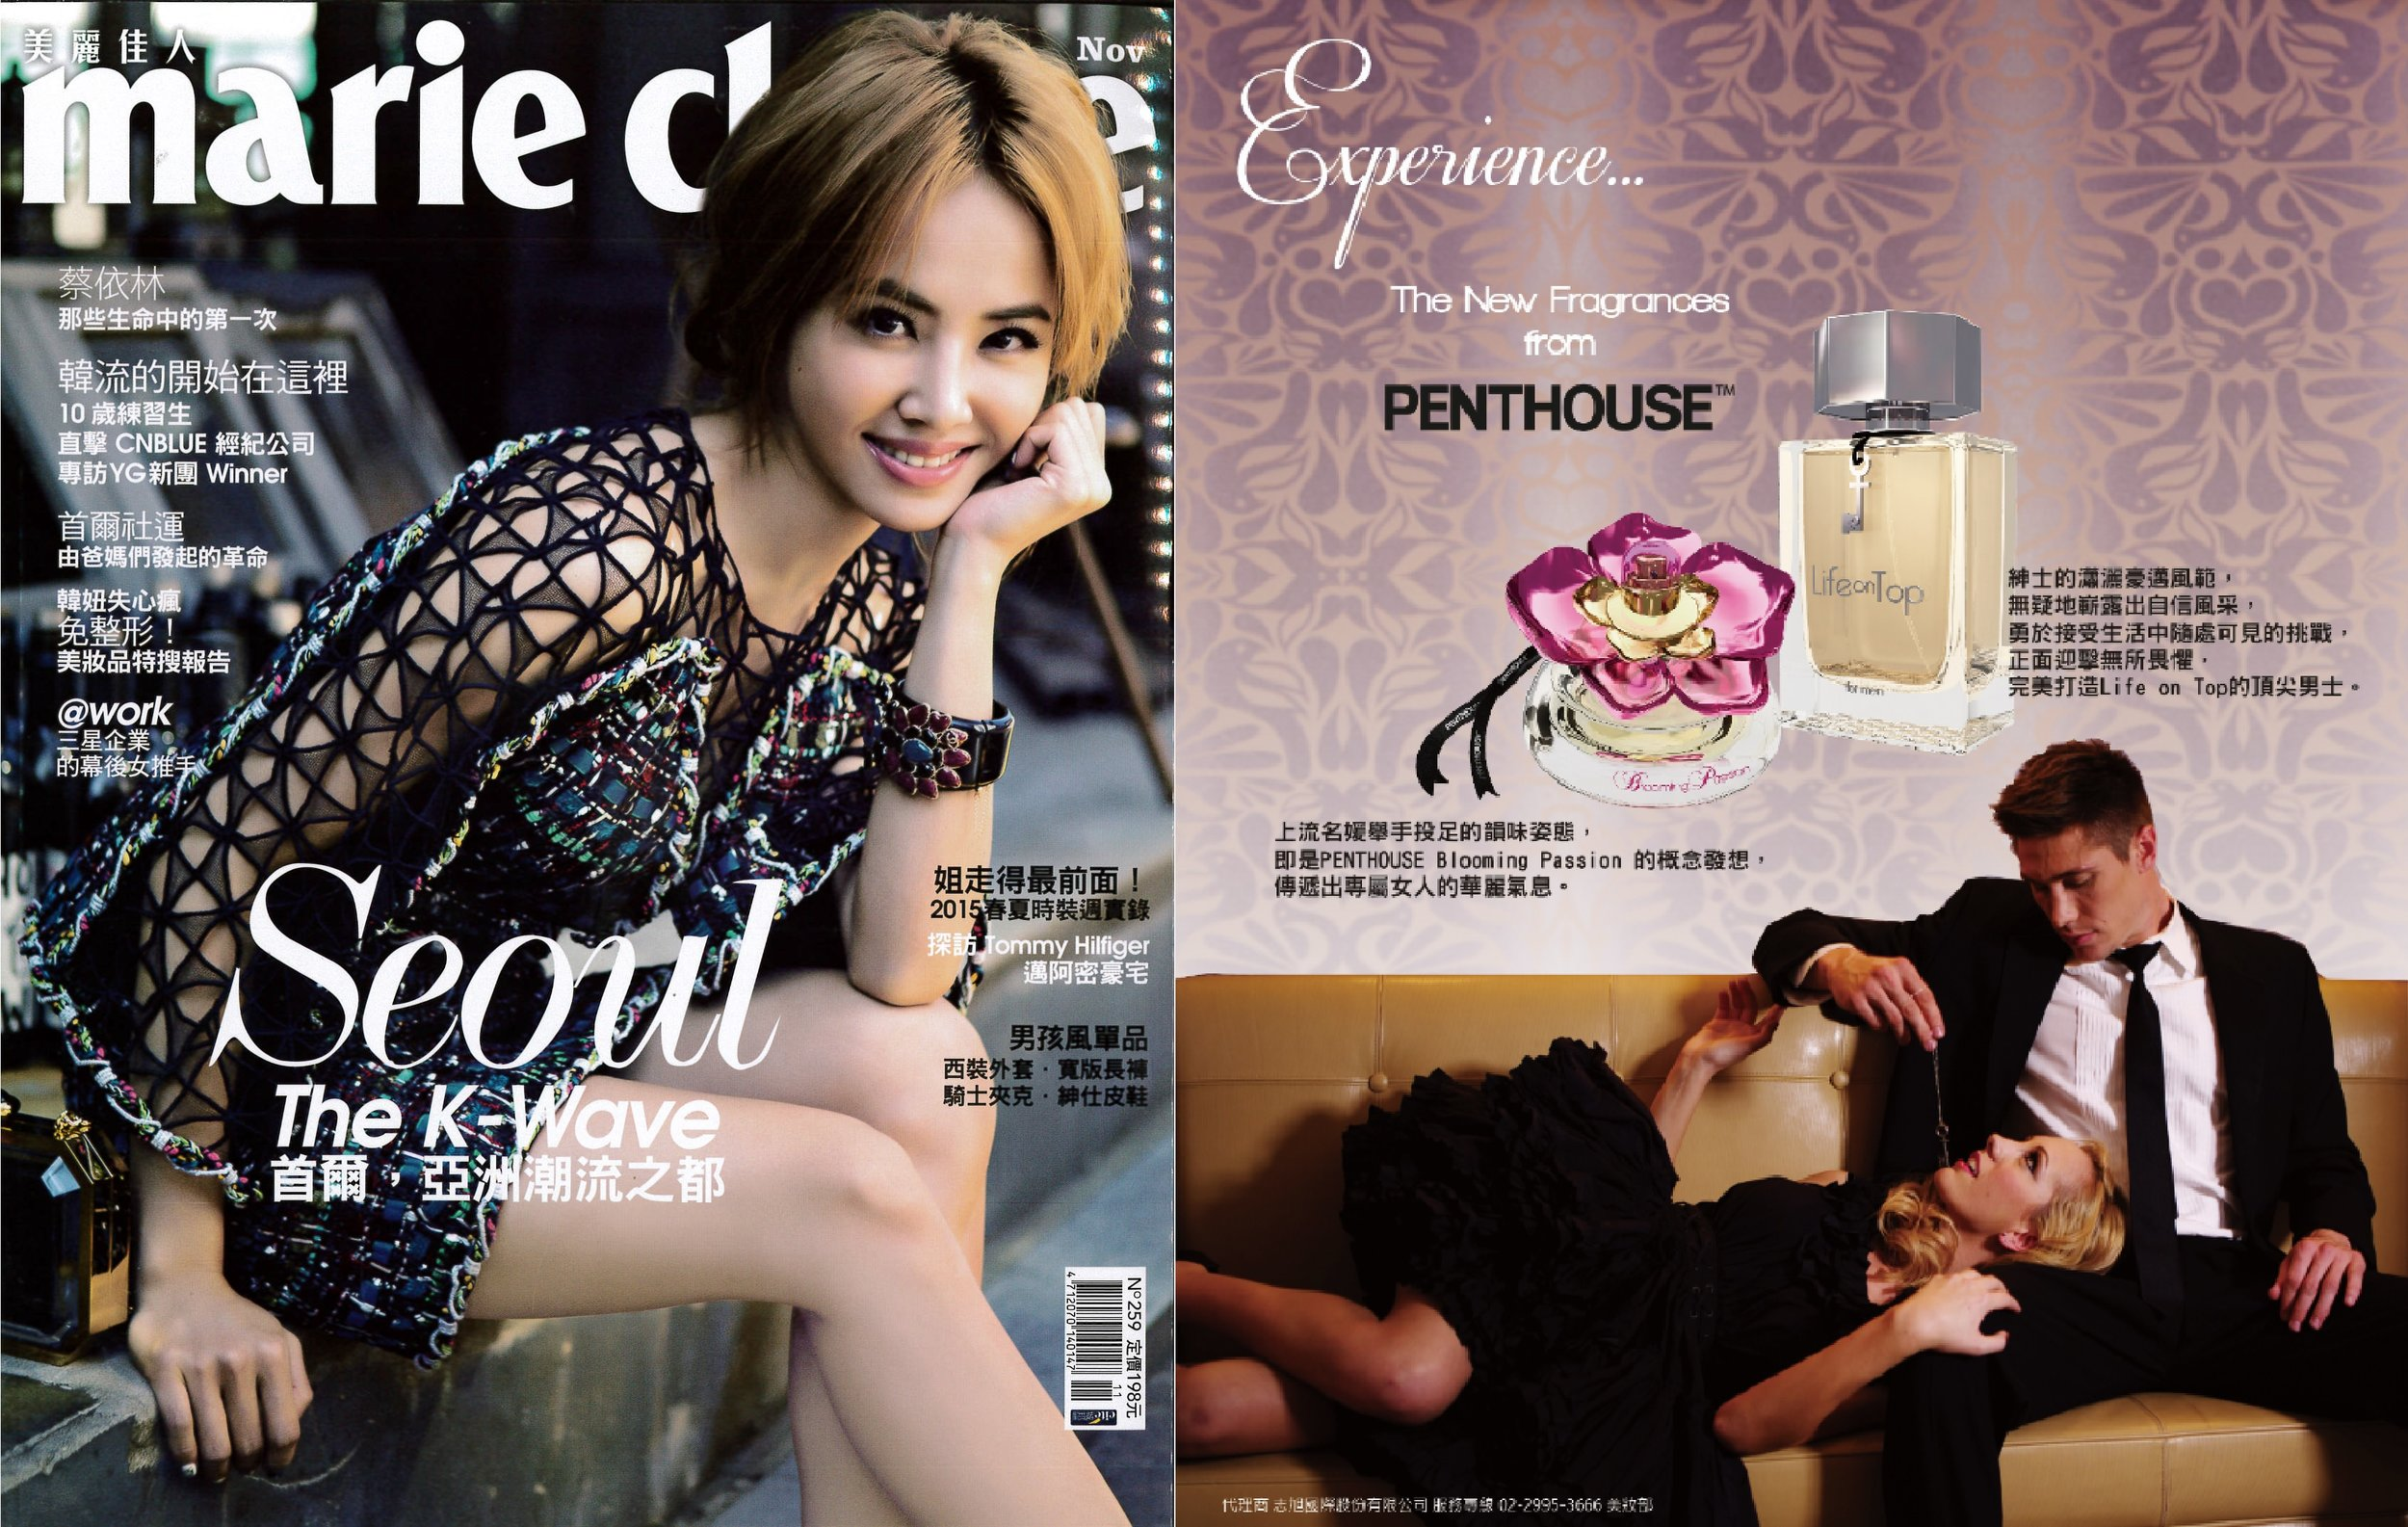 Marie Claire-2014.11號刊 (1).jpg